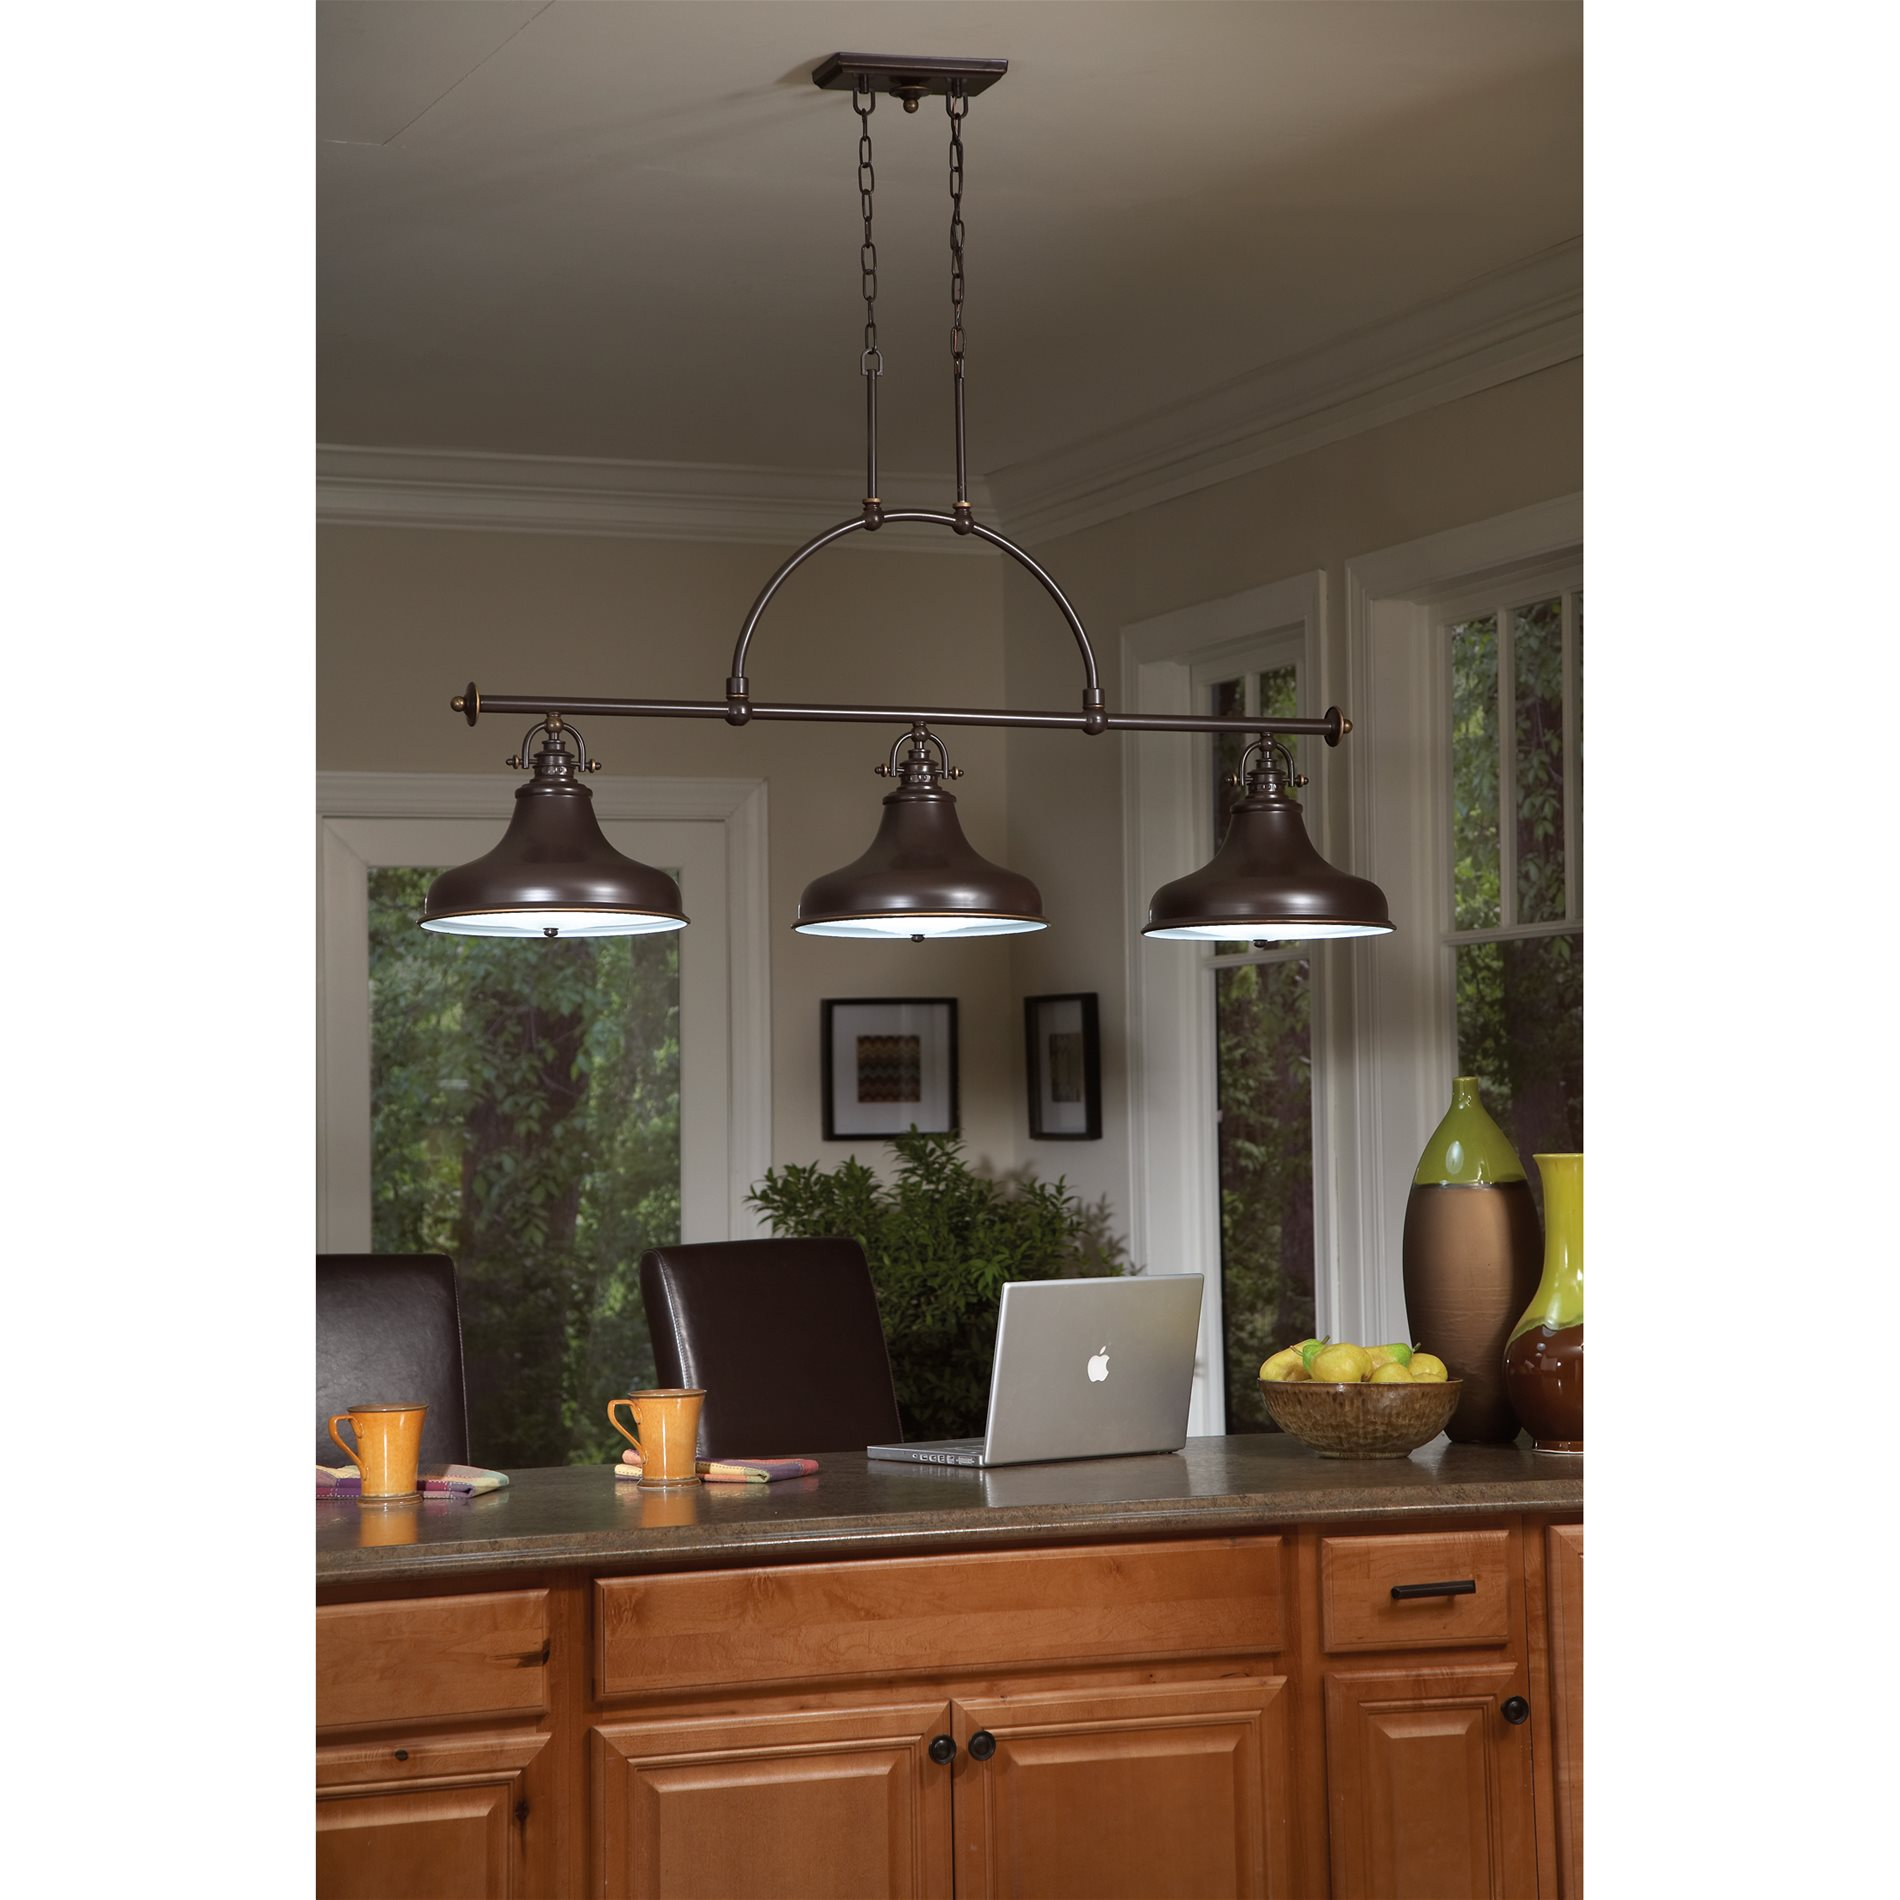 Ceiling lights kitchen island : Quoizel er pn emery transitional kitchen island